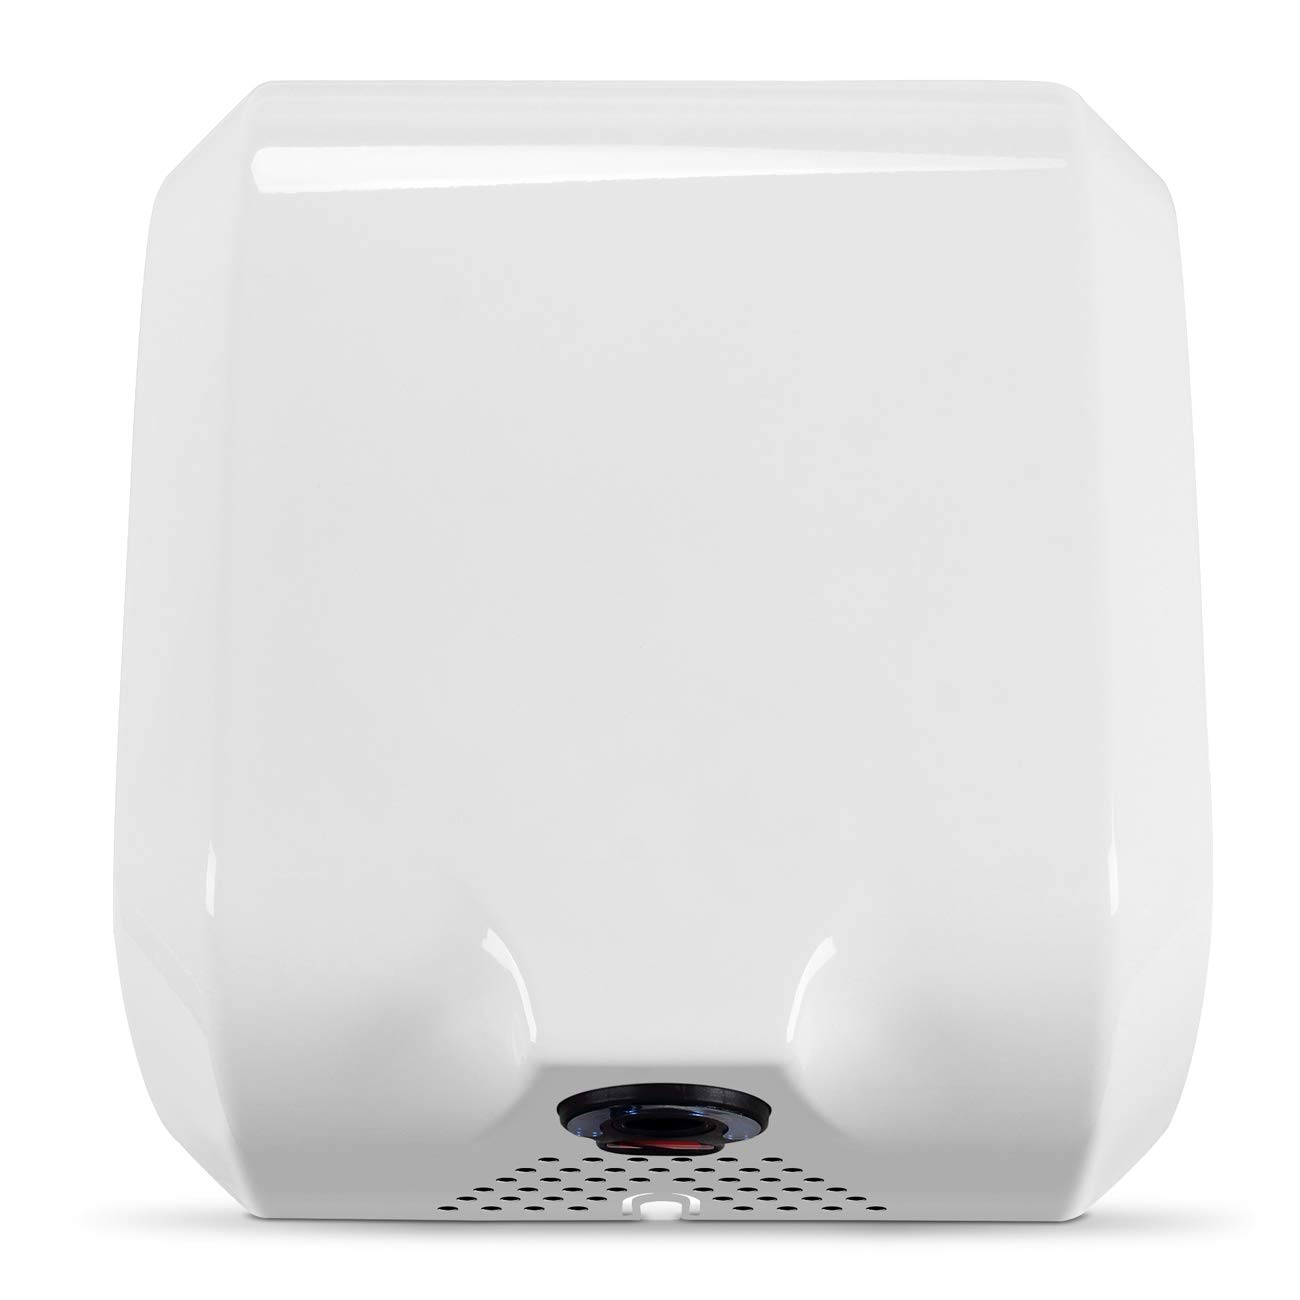 ARKSEN White Commercial Hand Dryer Automatic Sensor Surface Mounted Electric Hand Dry Mount Bathroom, 1800 Watts